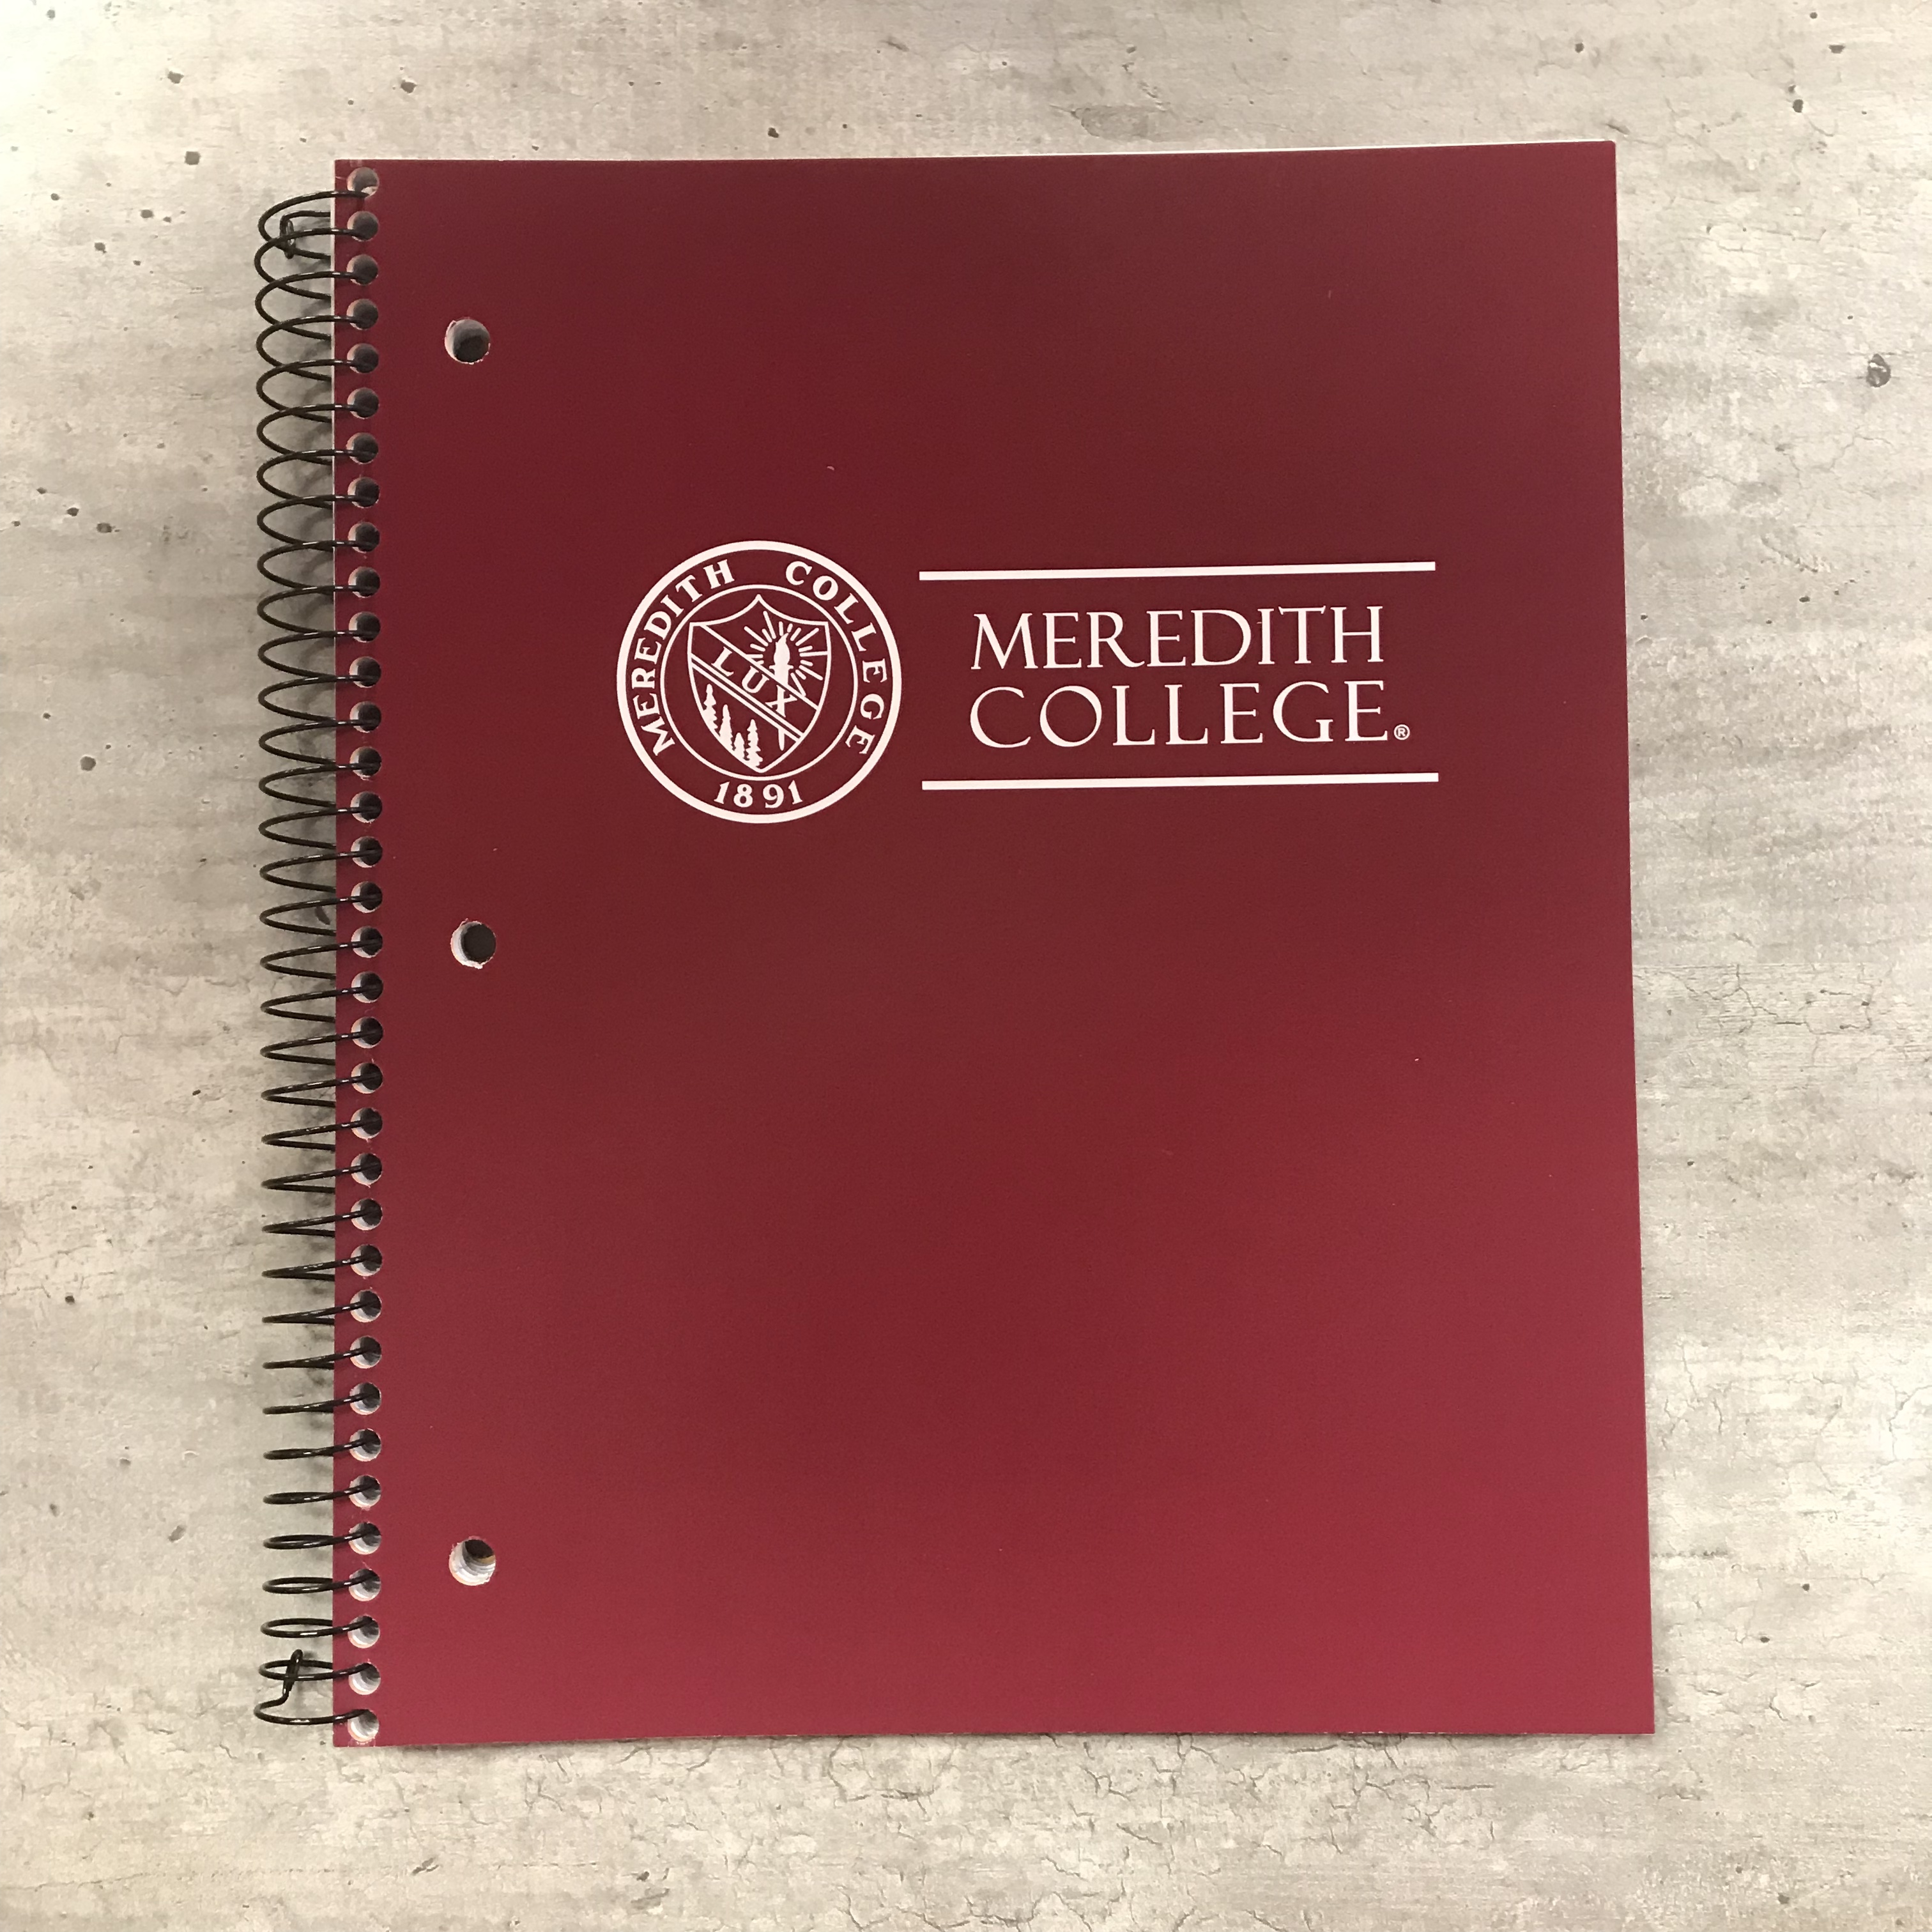 Image for the 3 Subject Spiral Notebook, Seal Meredith College product